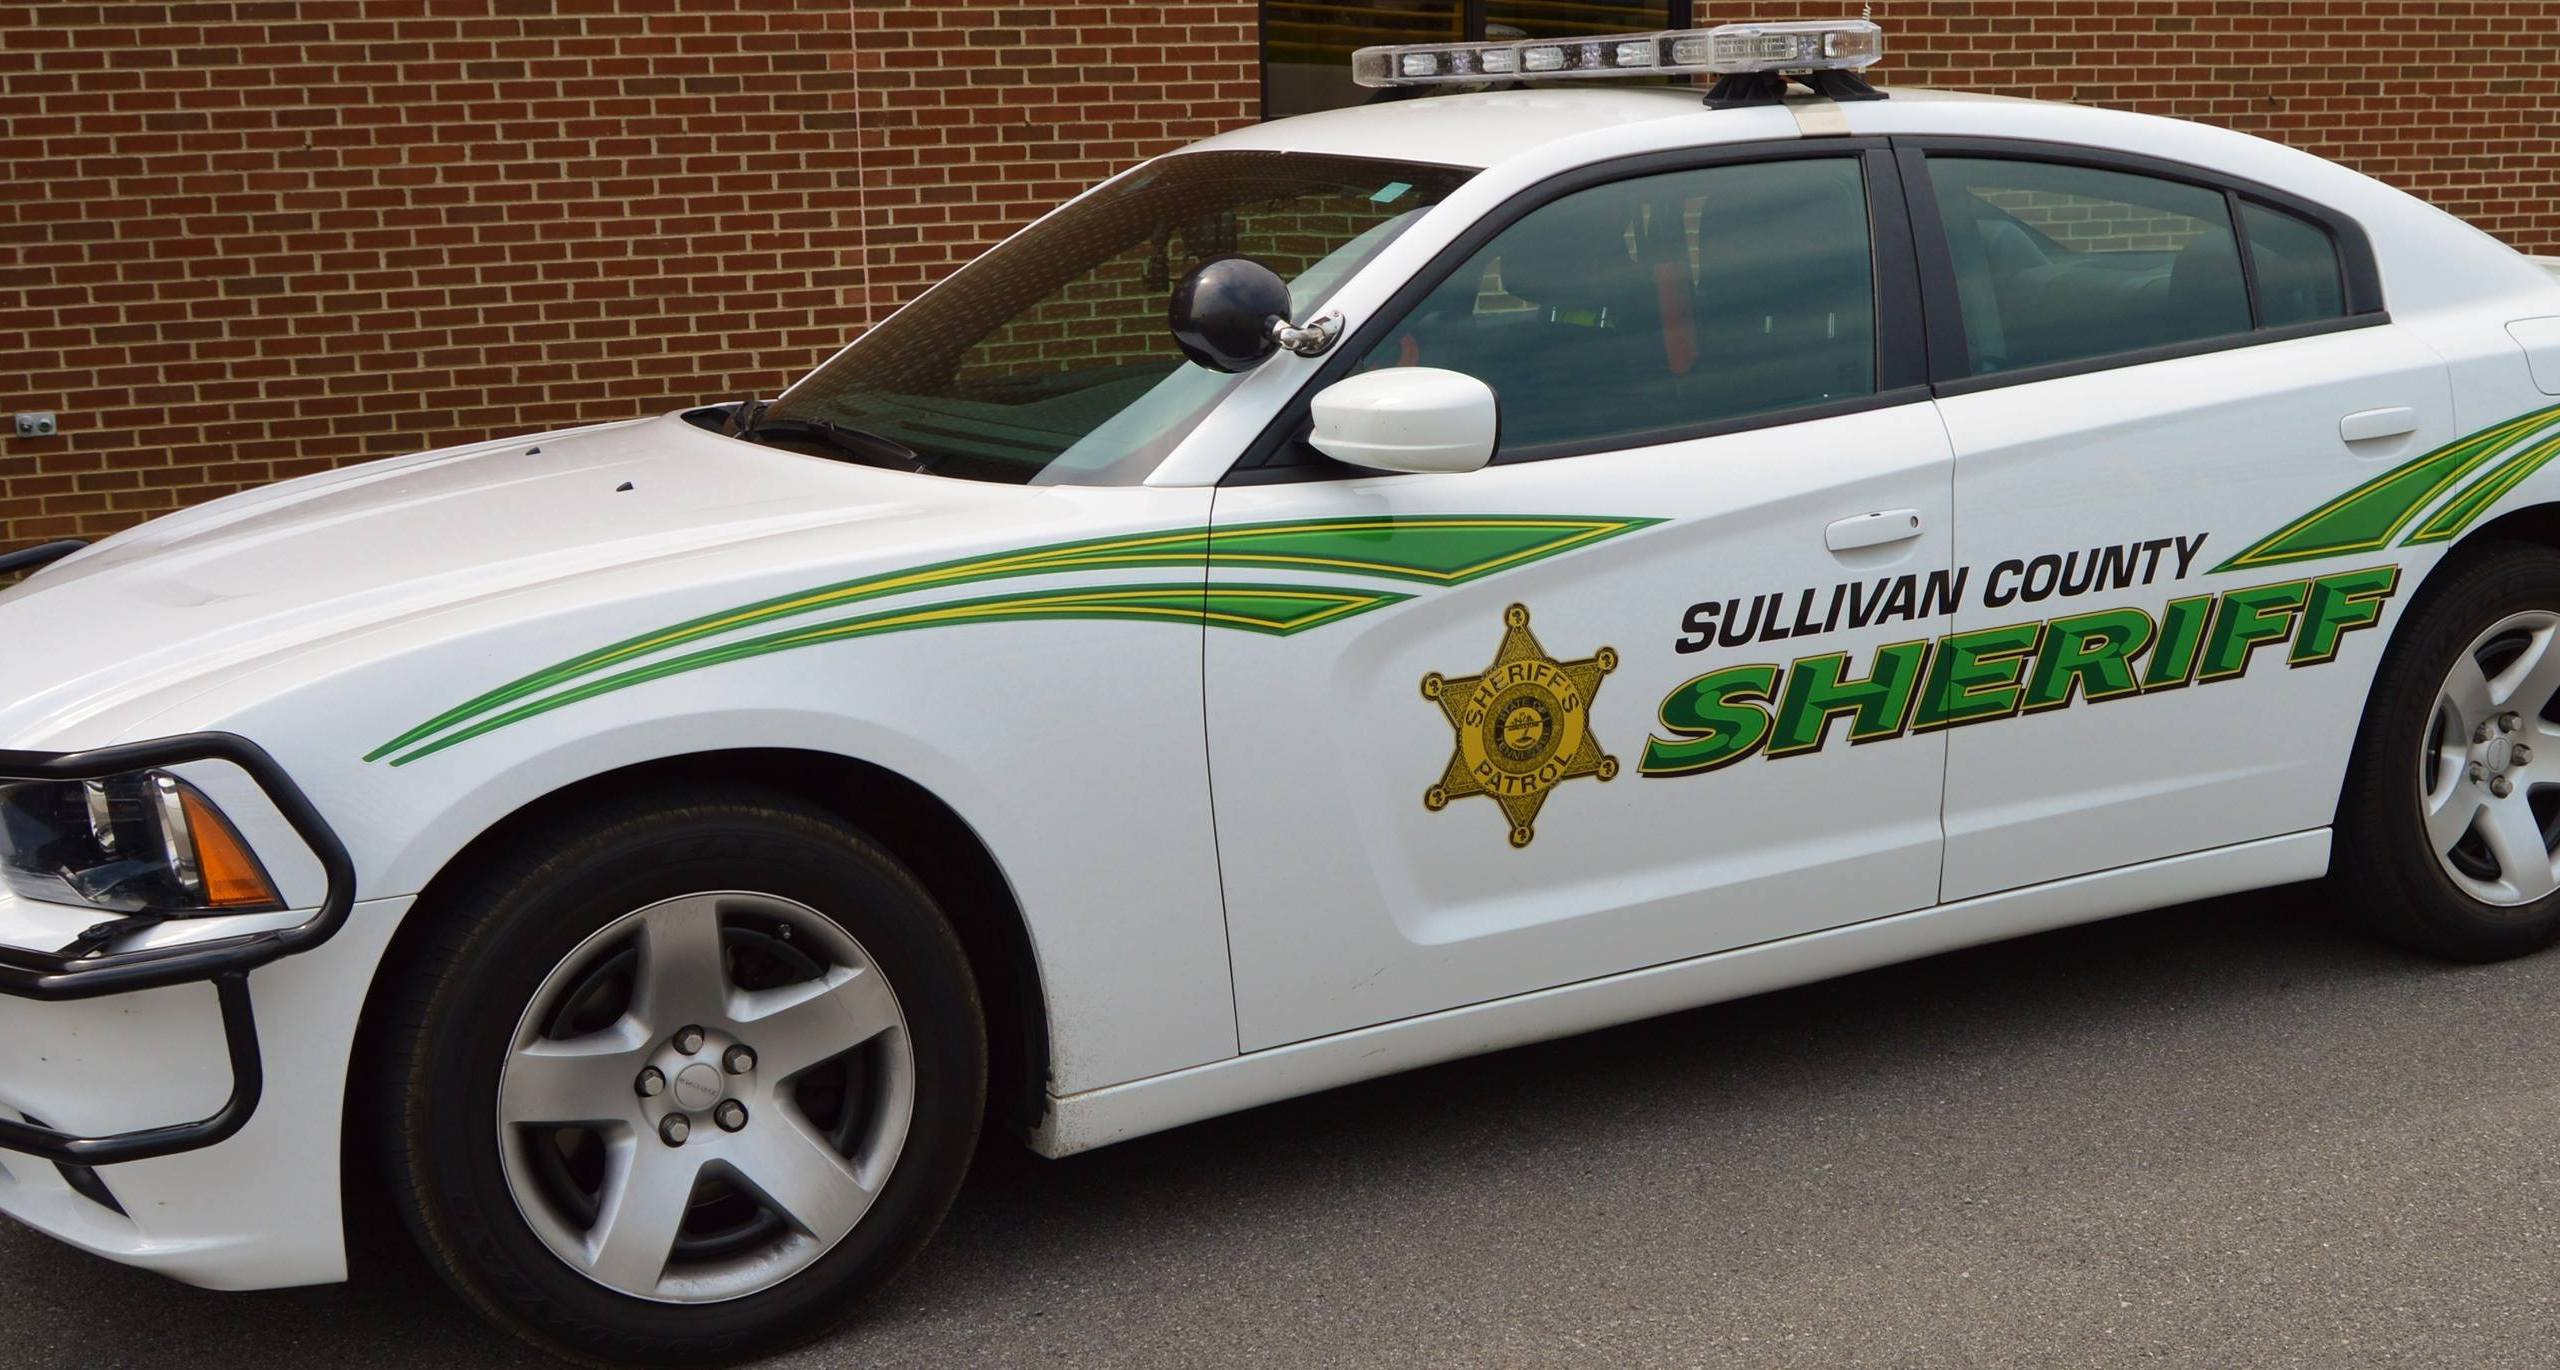 sullivan-county-sheriffs-office-car-source-facebook_213141